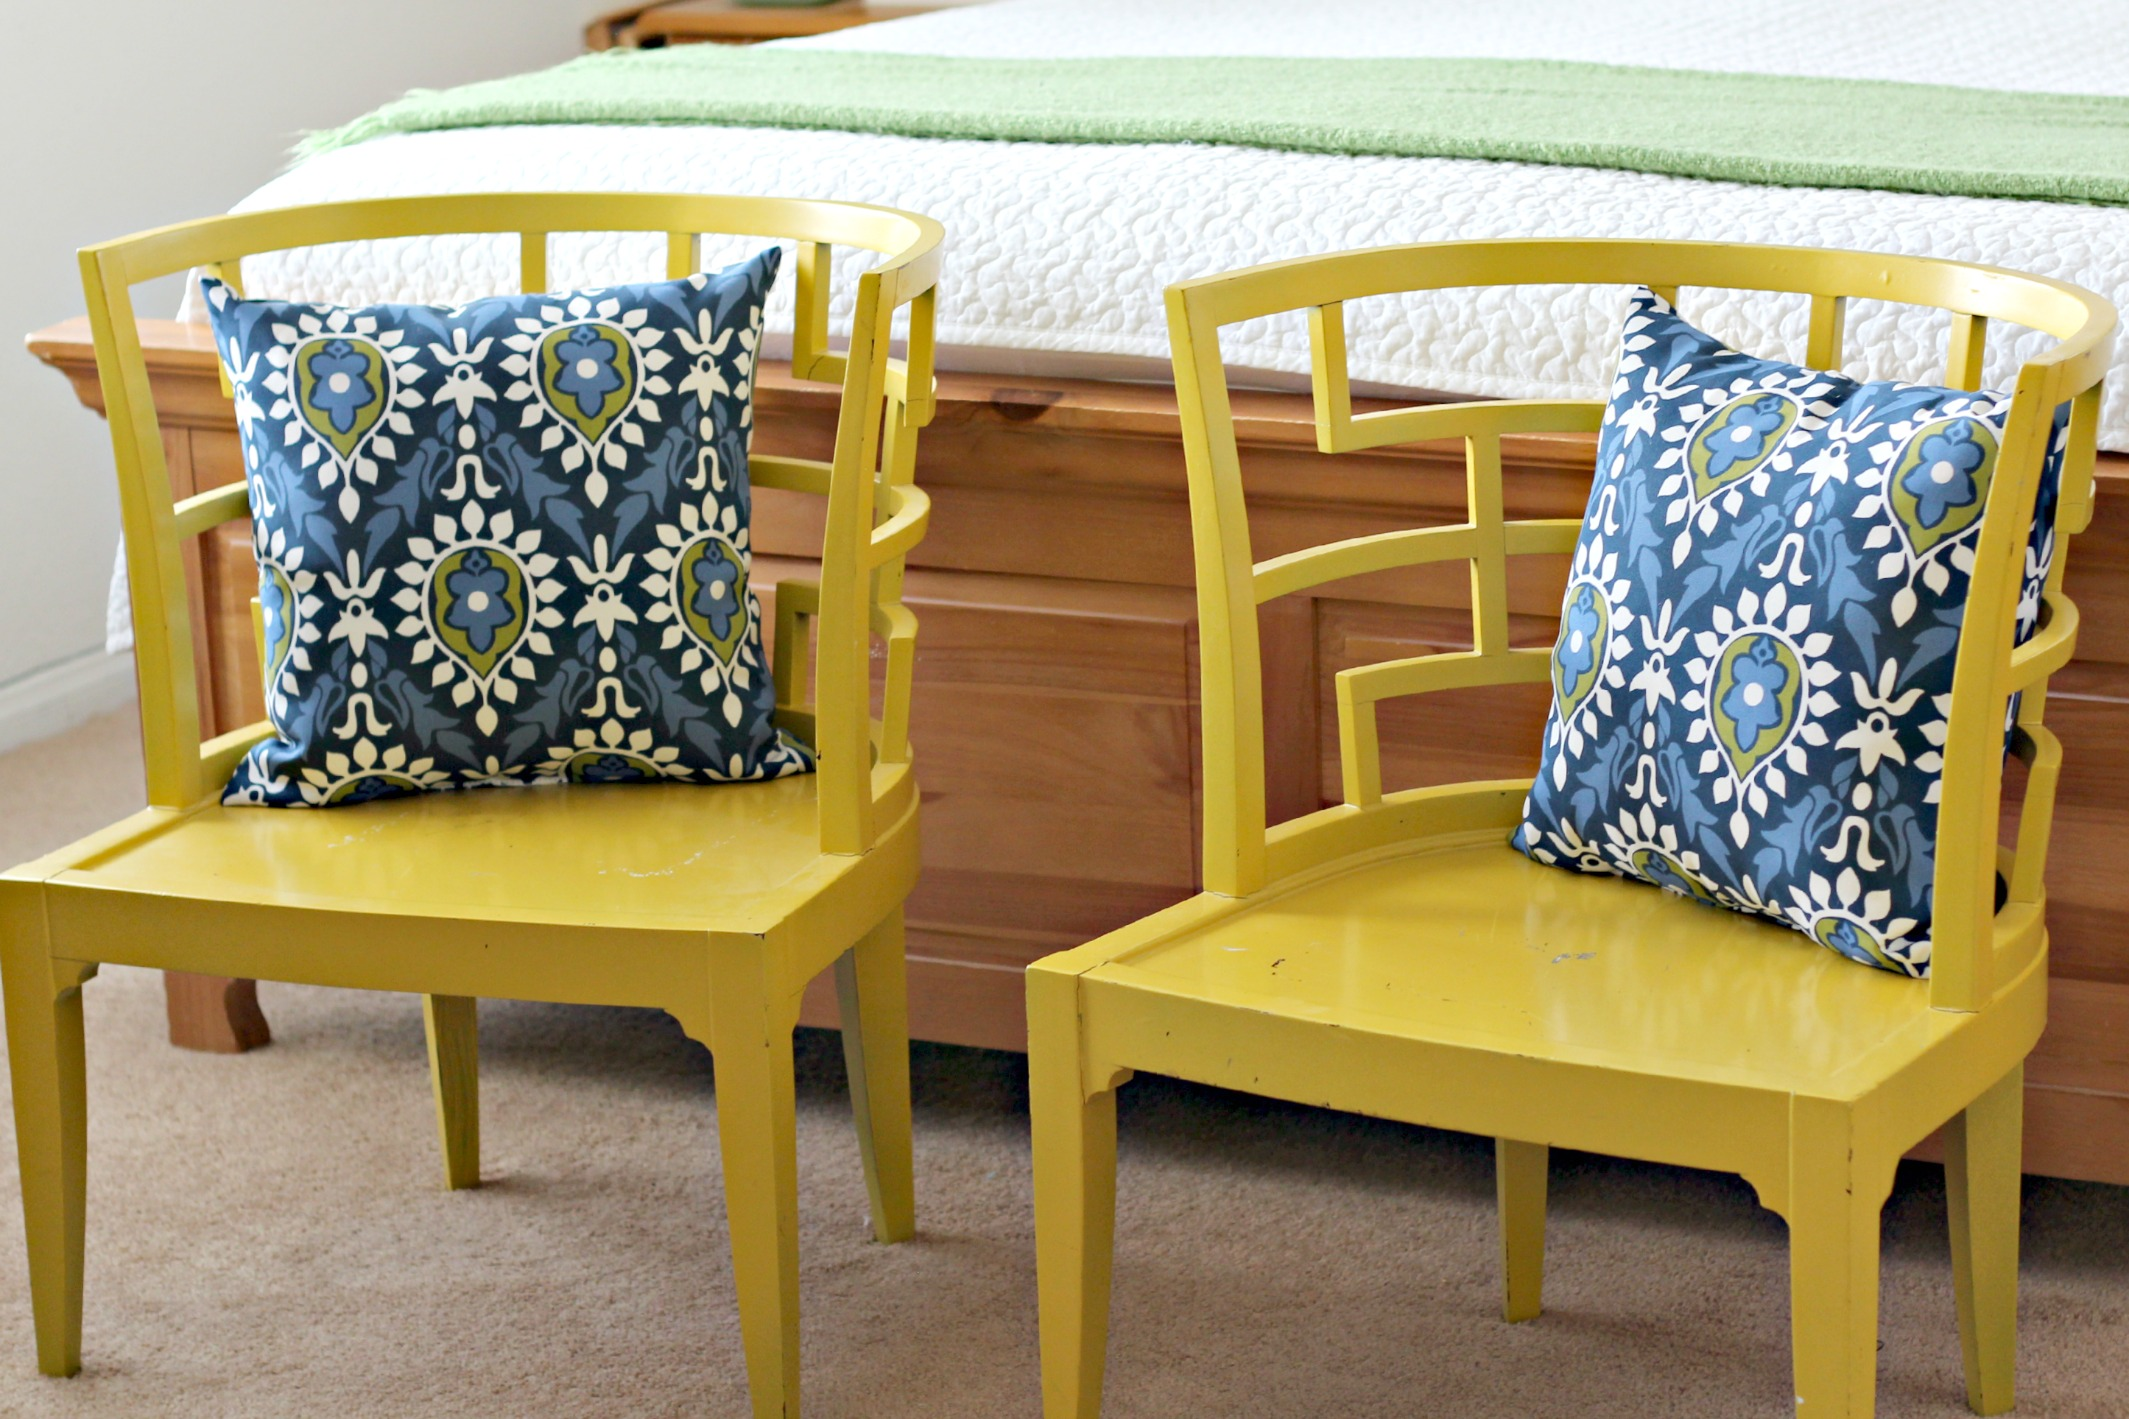 Brighten Your Home With Spring Decor - 3 Things 3 Ways - Organize ...